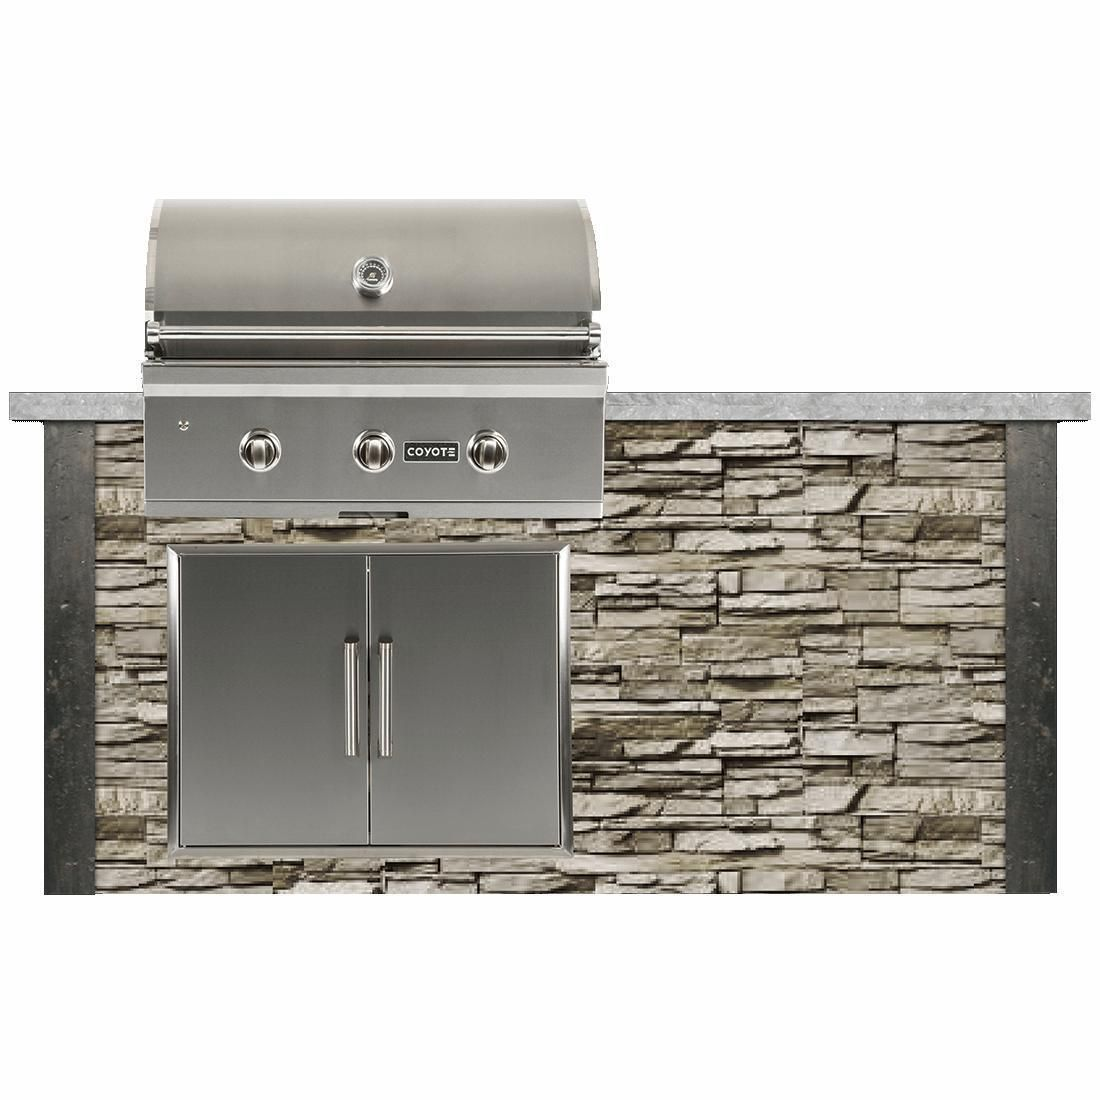 Coyote Ready To Assemble 6 Ft Outdoor Kitchen Island With 34 Inch C Series Natural Gas Grill Ships As Propane With Conversion Fittings Stacked Stone Stone G Outdoor Kitchen Island Outdoor Kitchen Natural Gas Grill